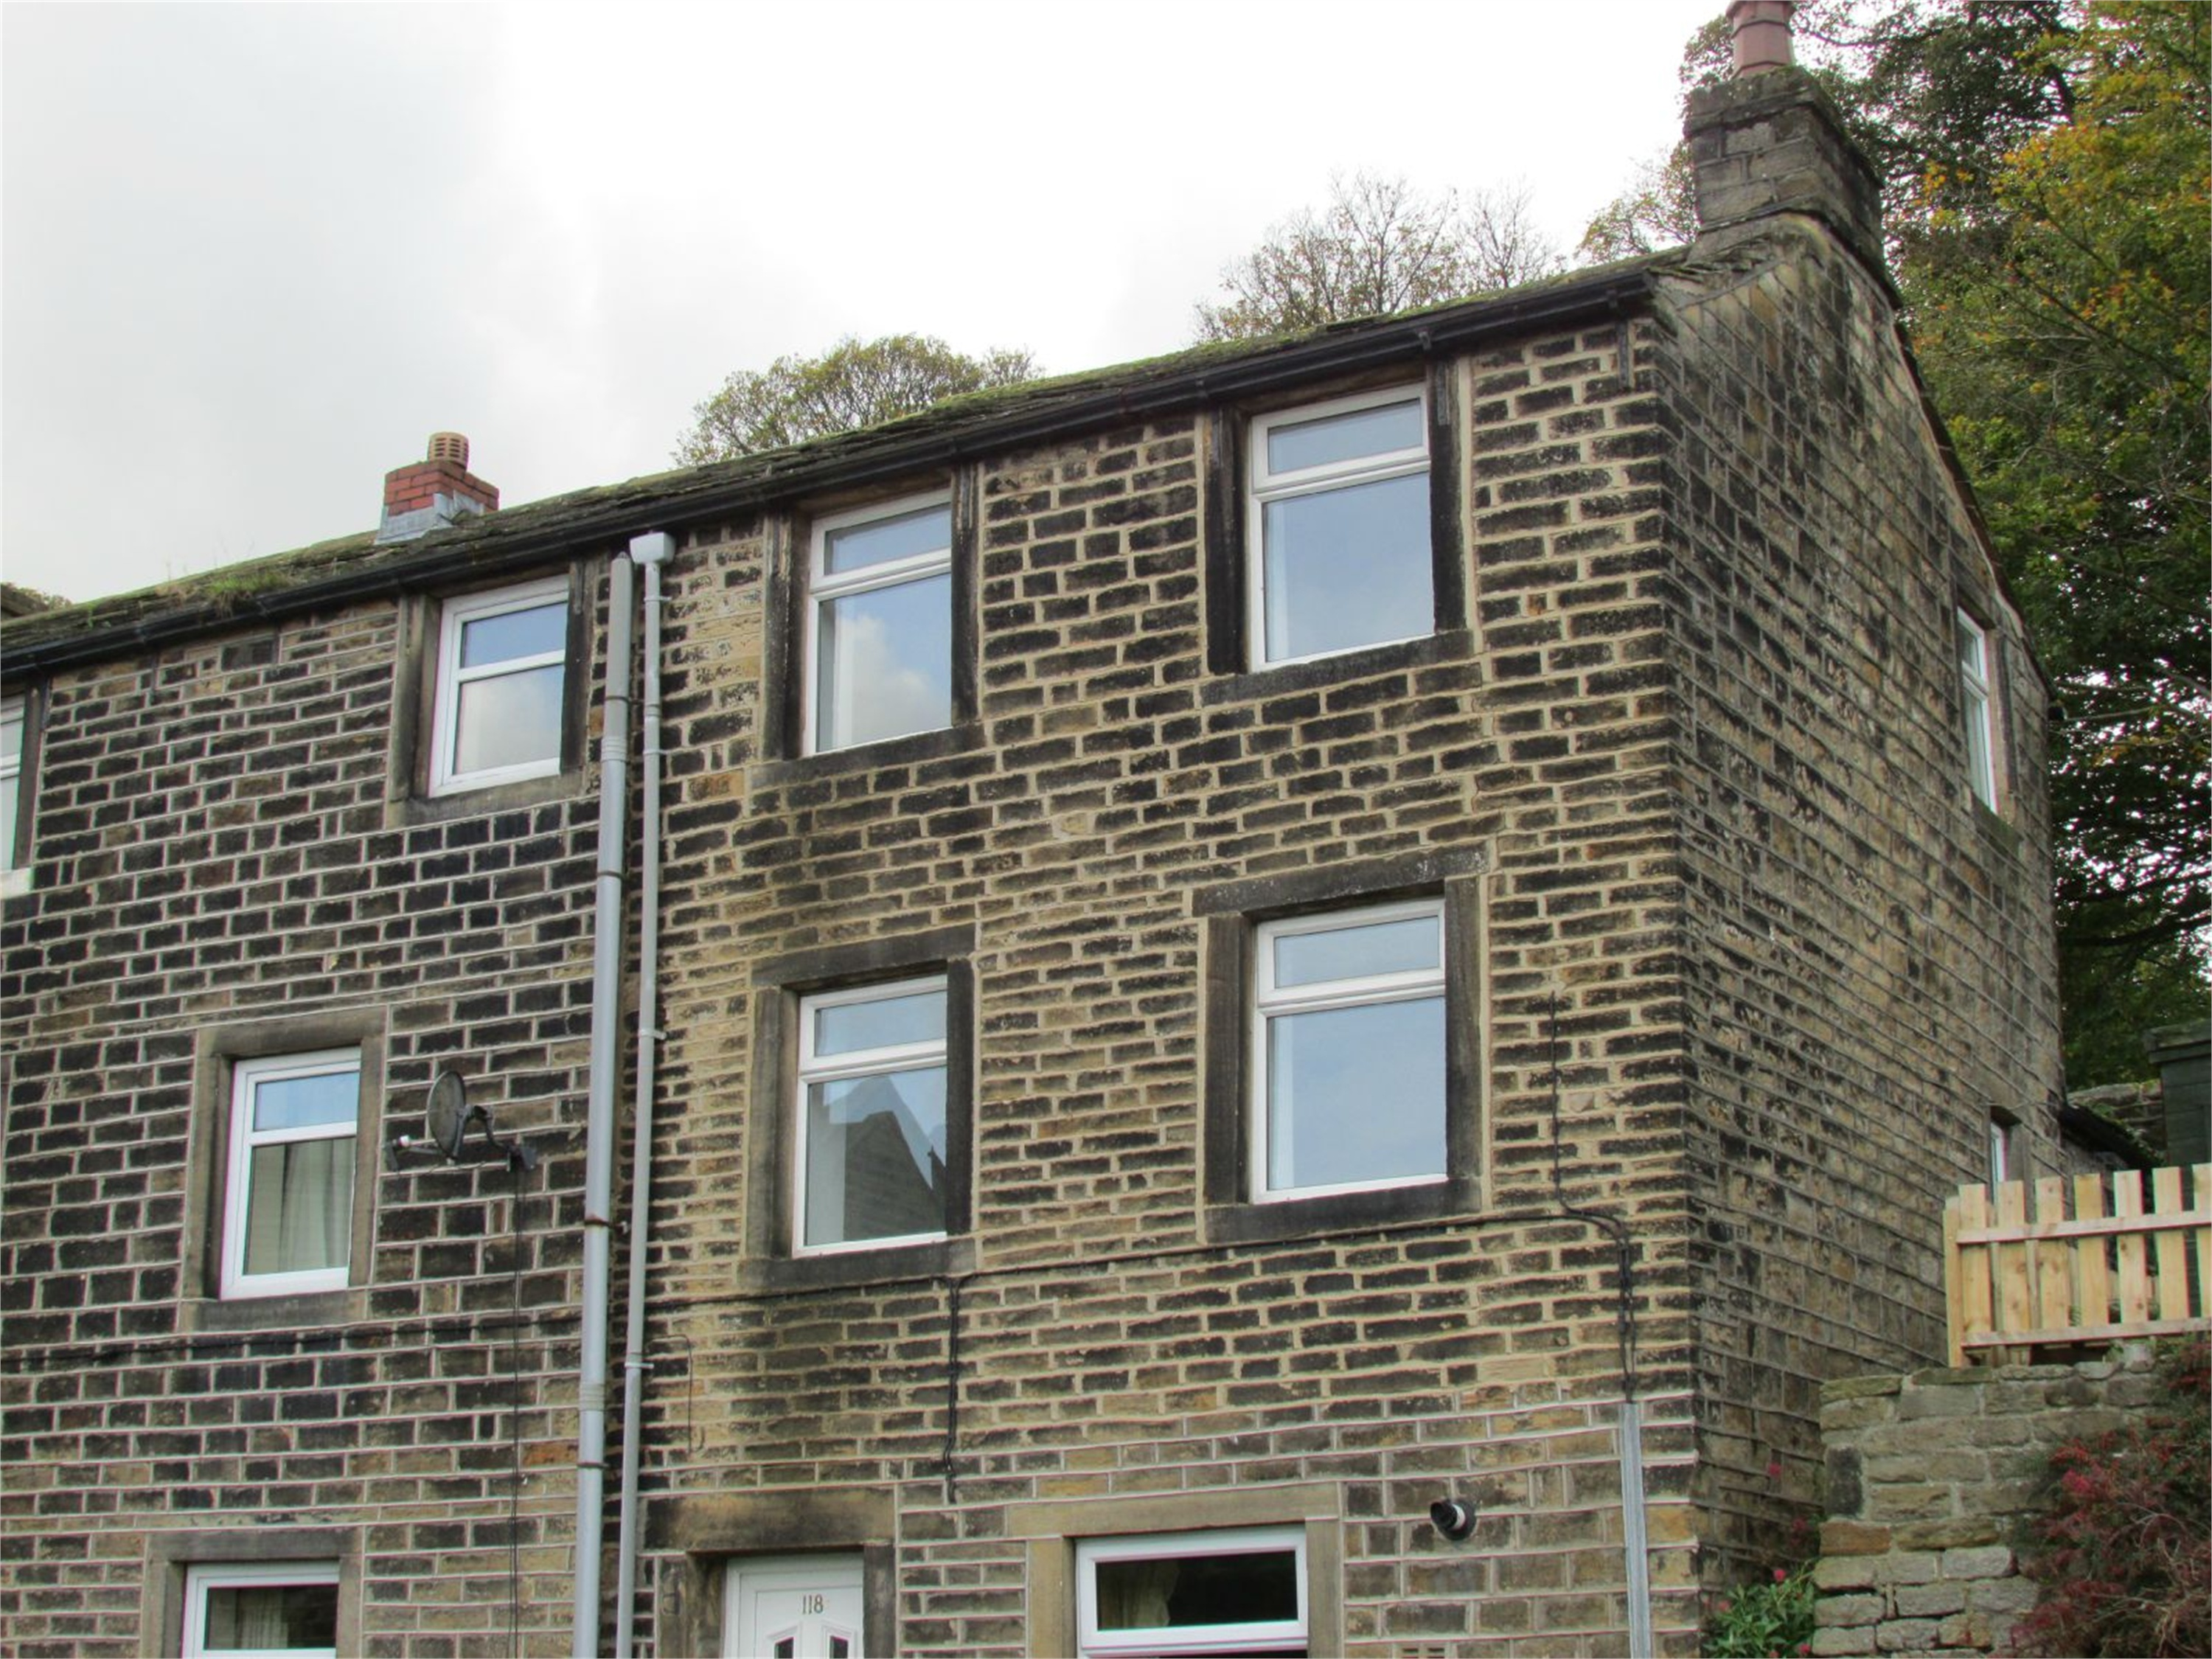 120 Lower Town End Road, Wooldale, Holmfirth, HD9 1QX